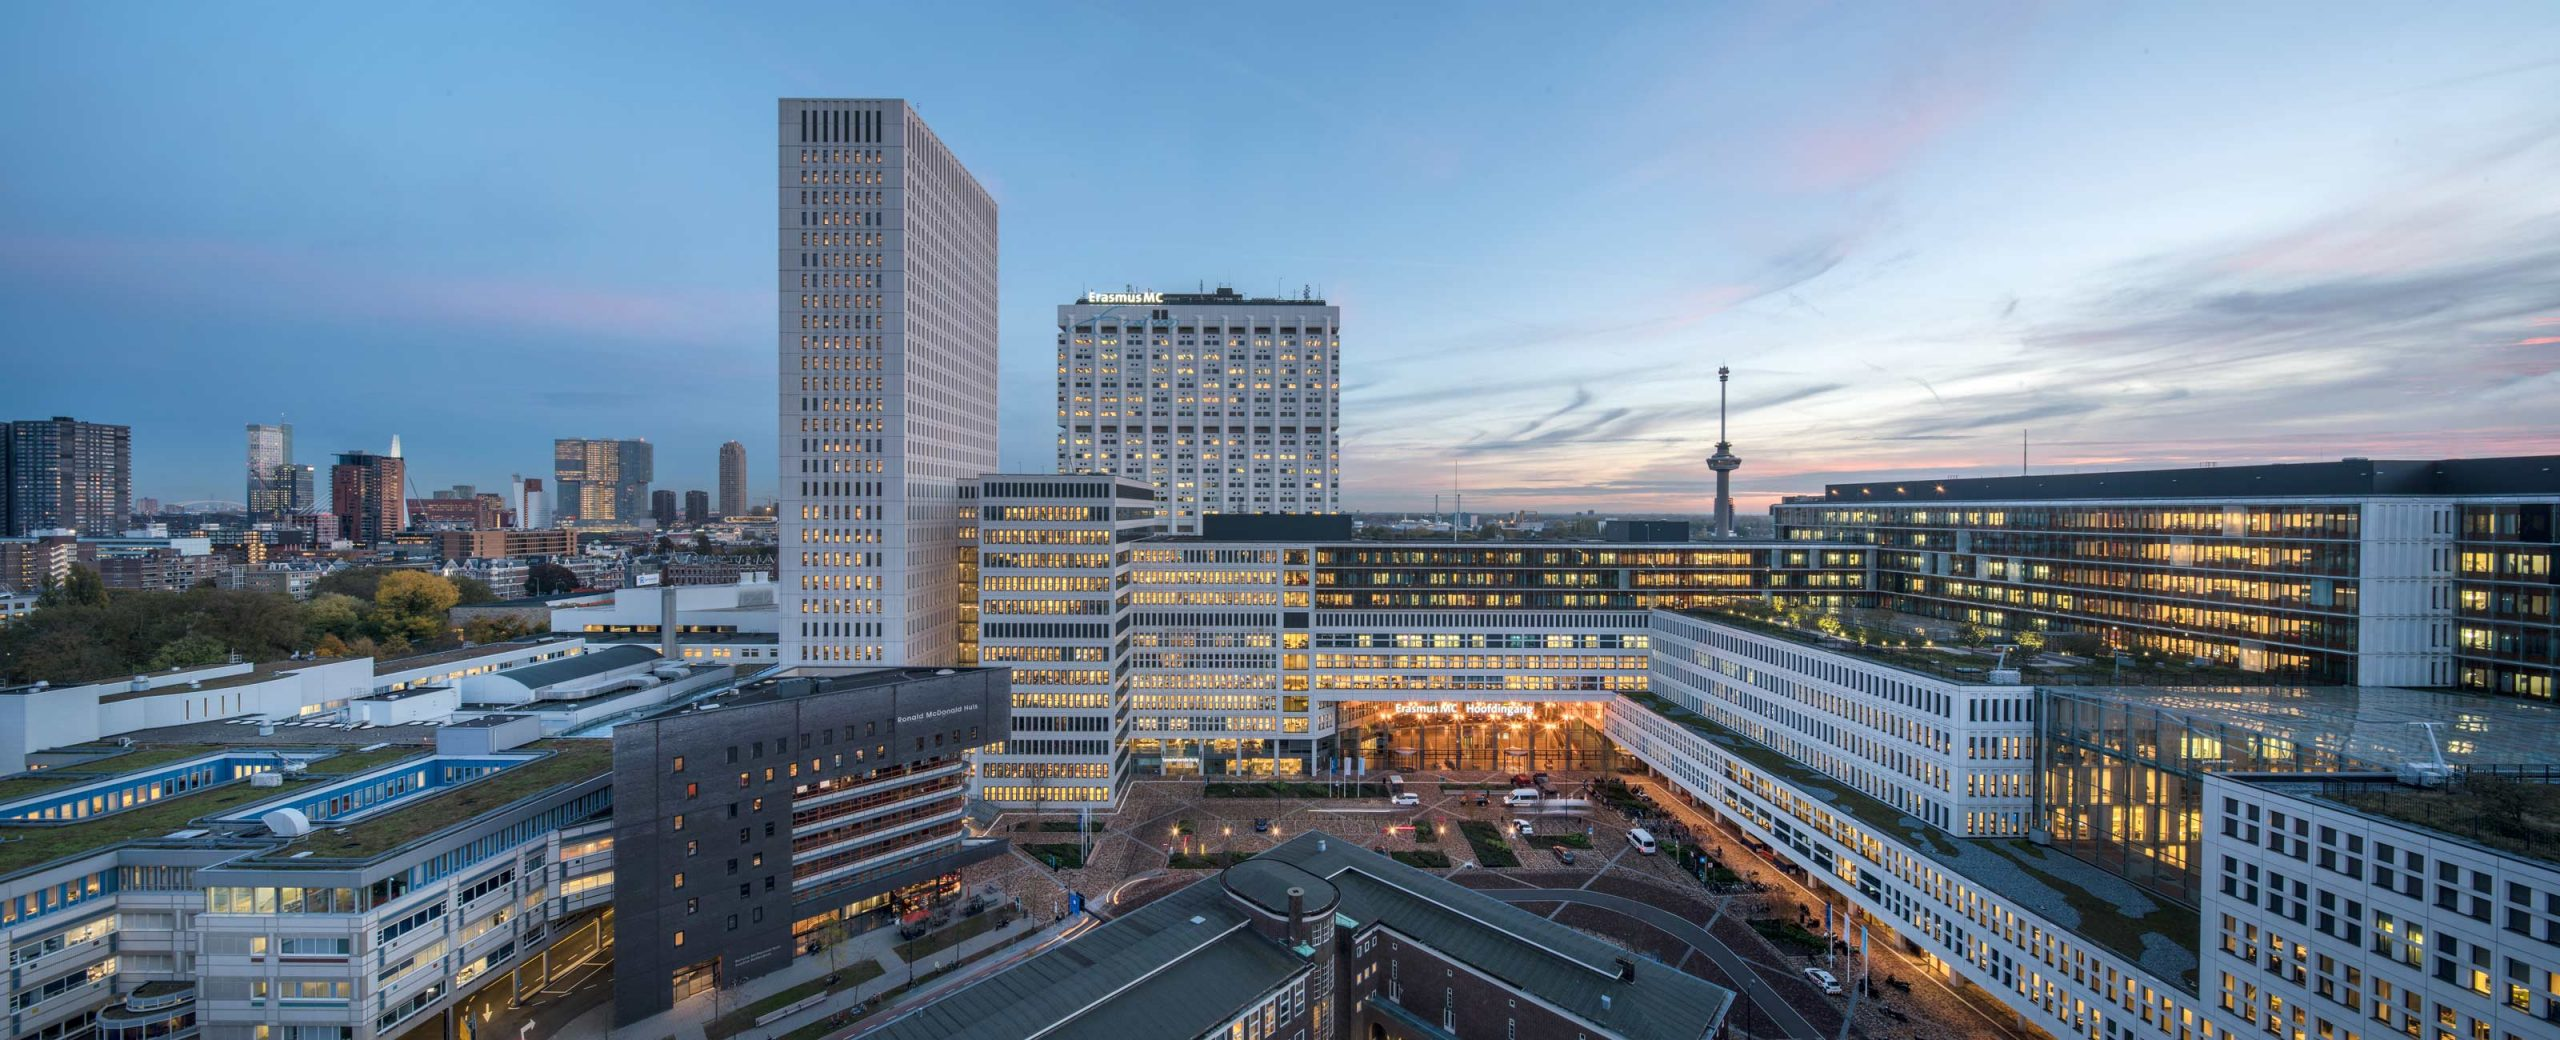 Erasmus University Medical Center based in Rotterdam, Netherlands